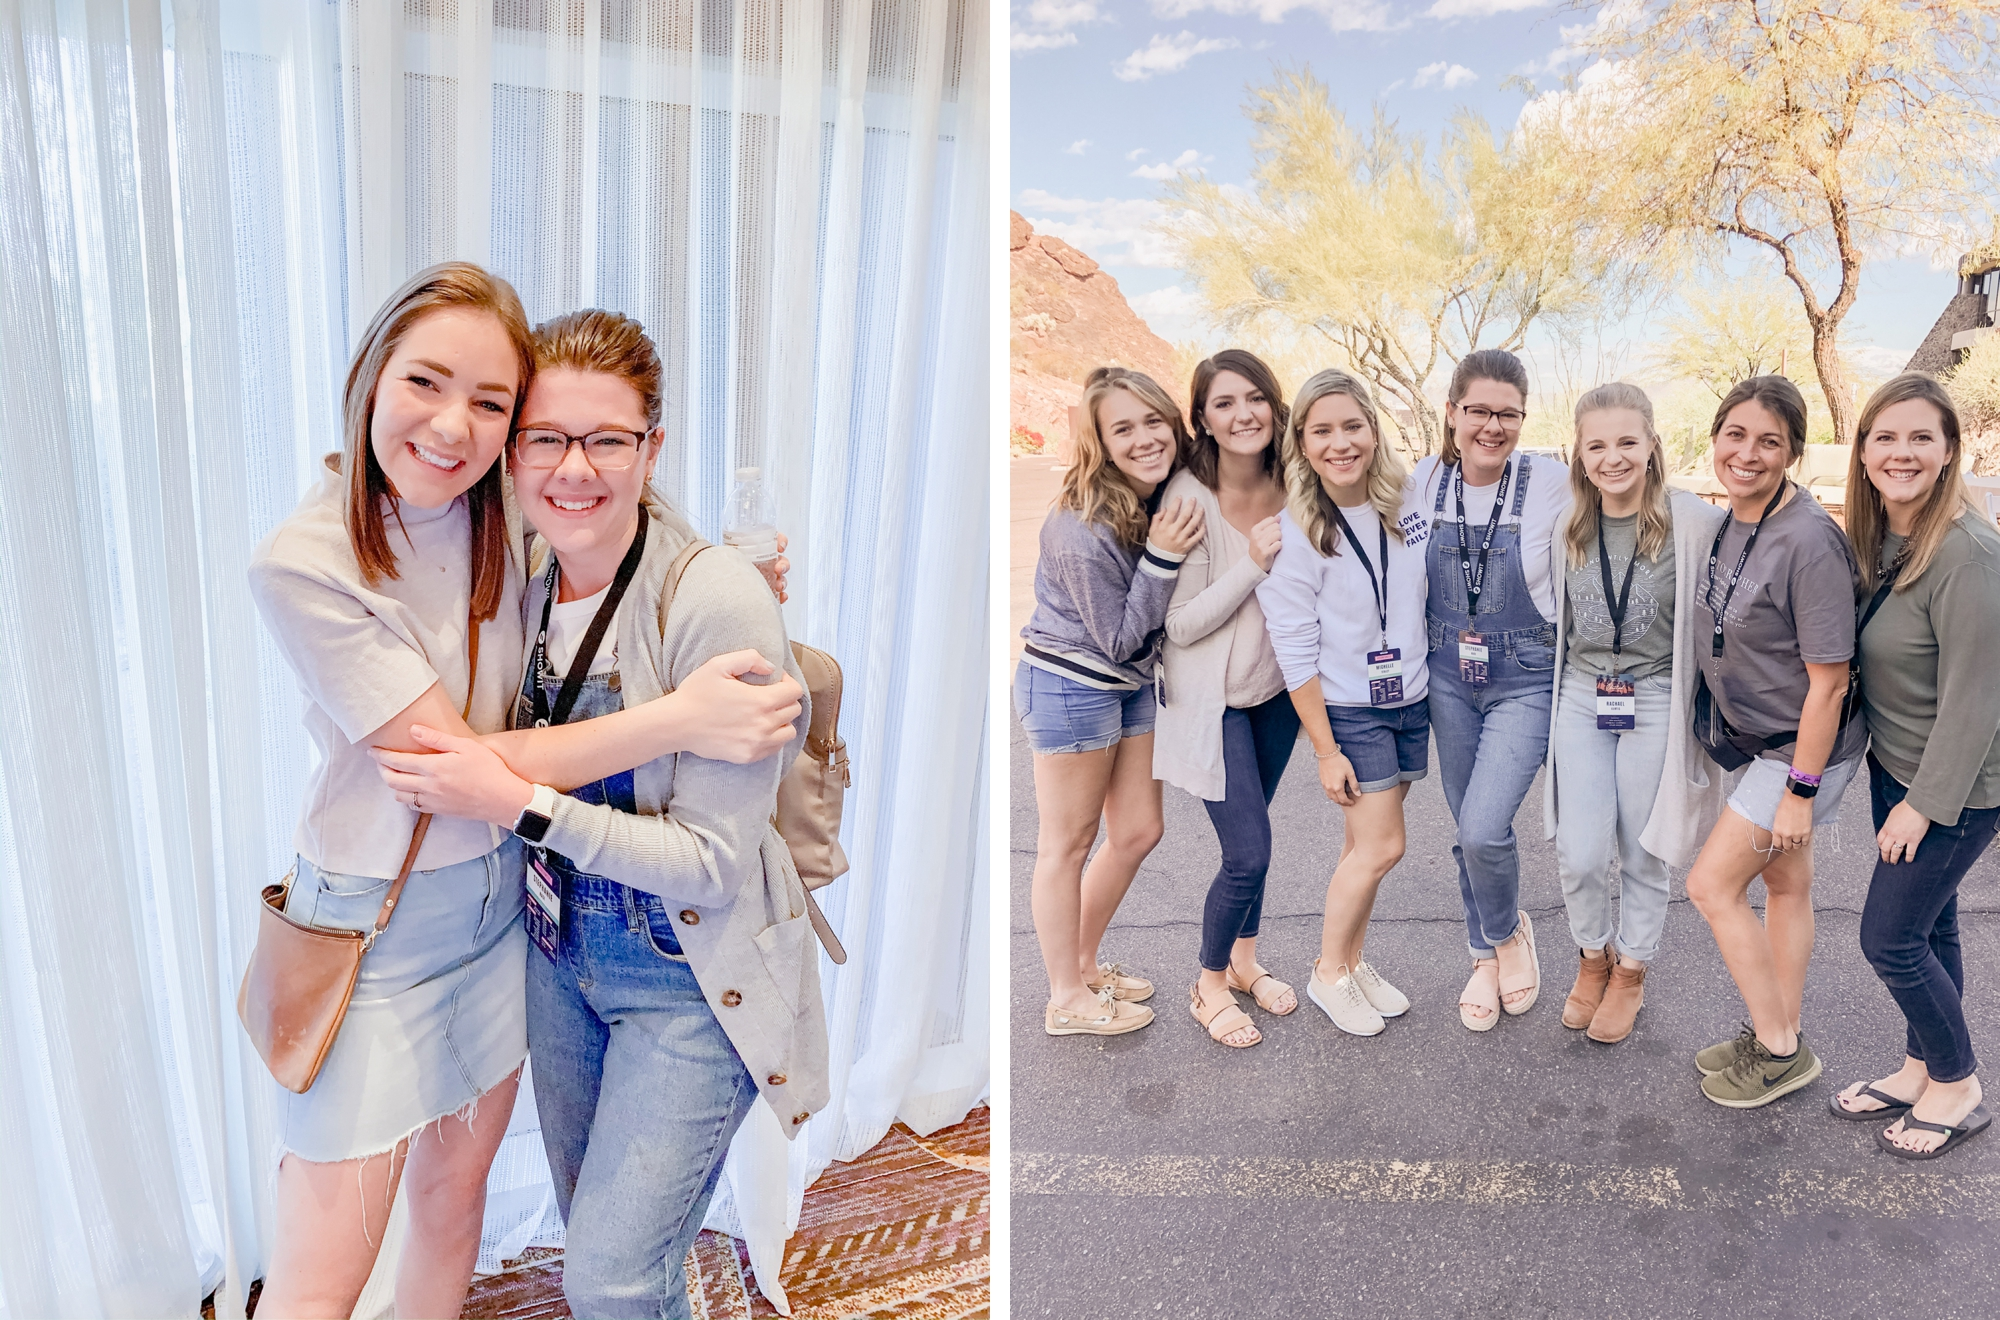 showit-united-conference-in-arizona